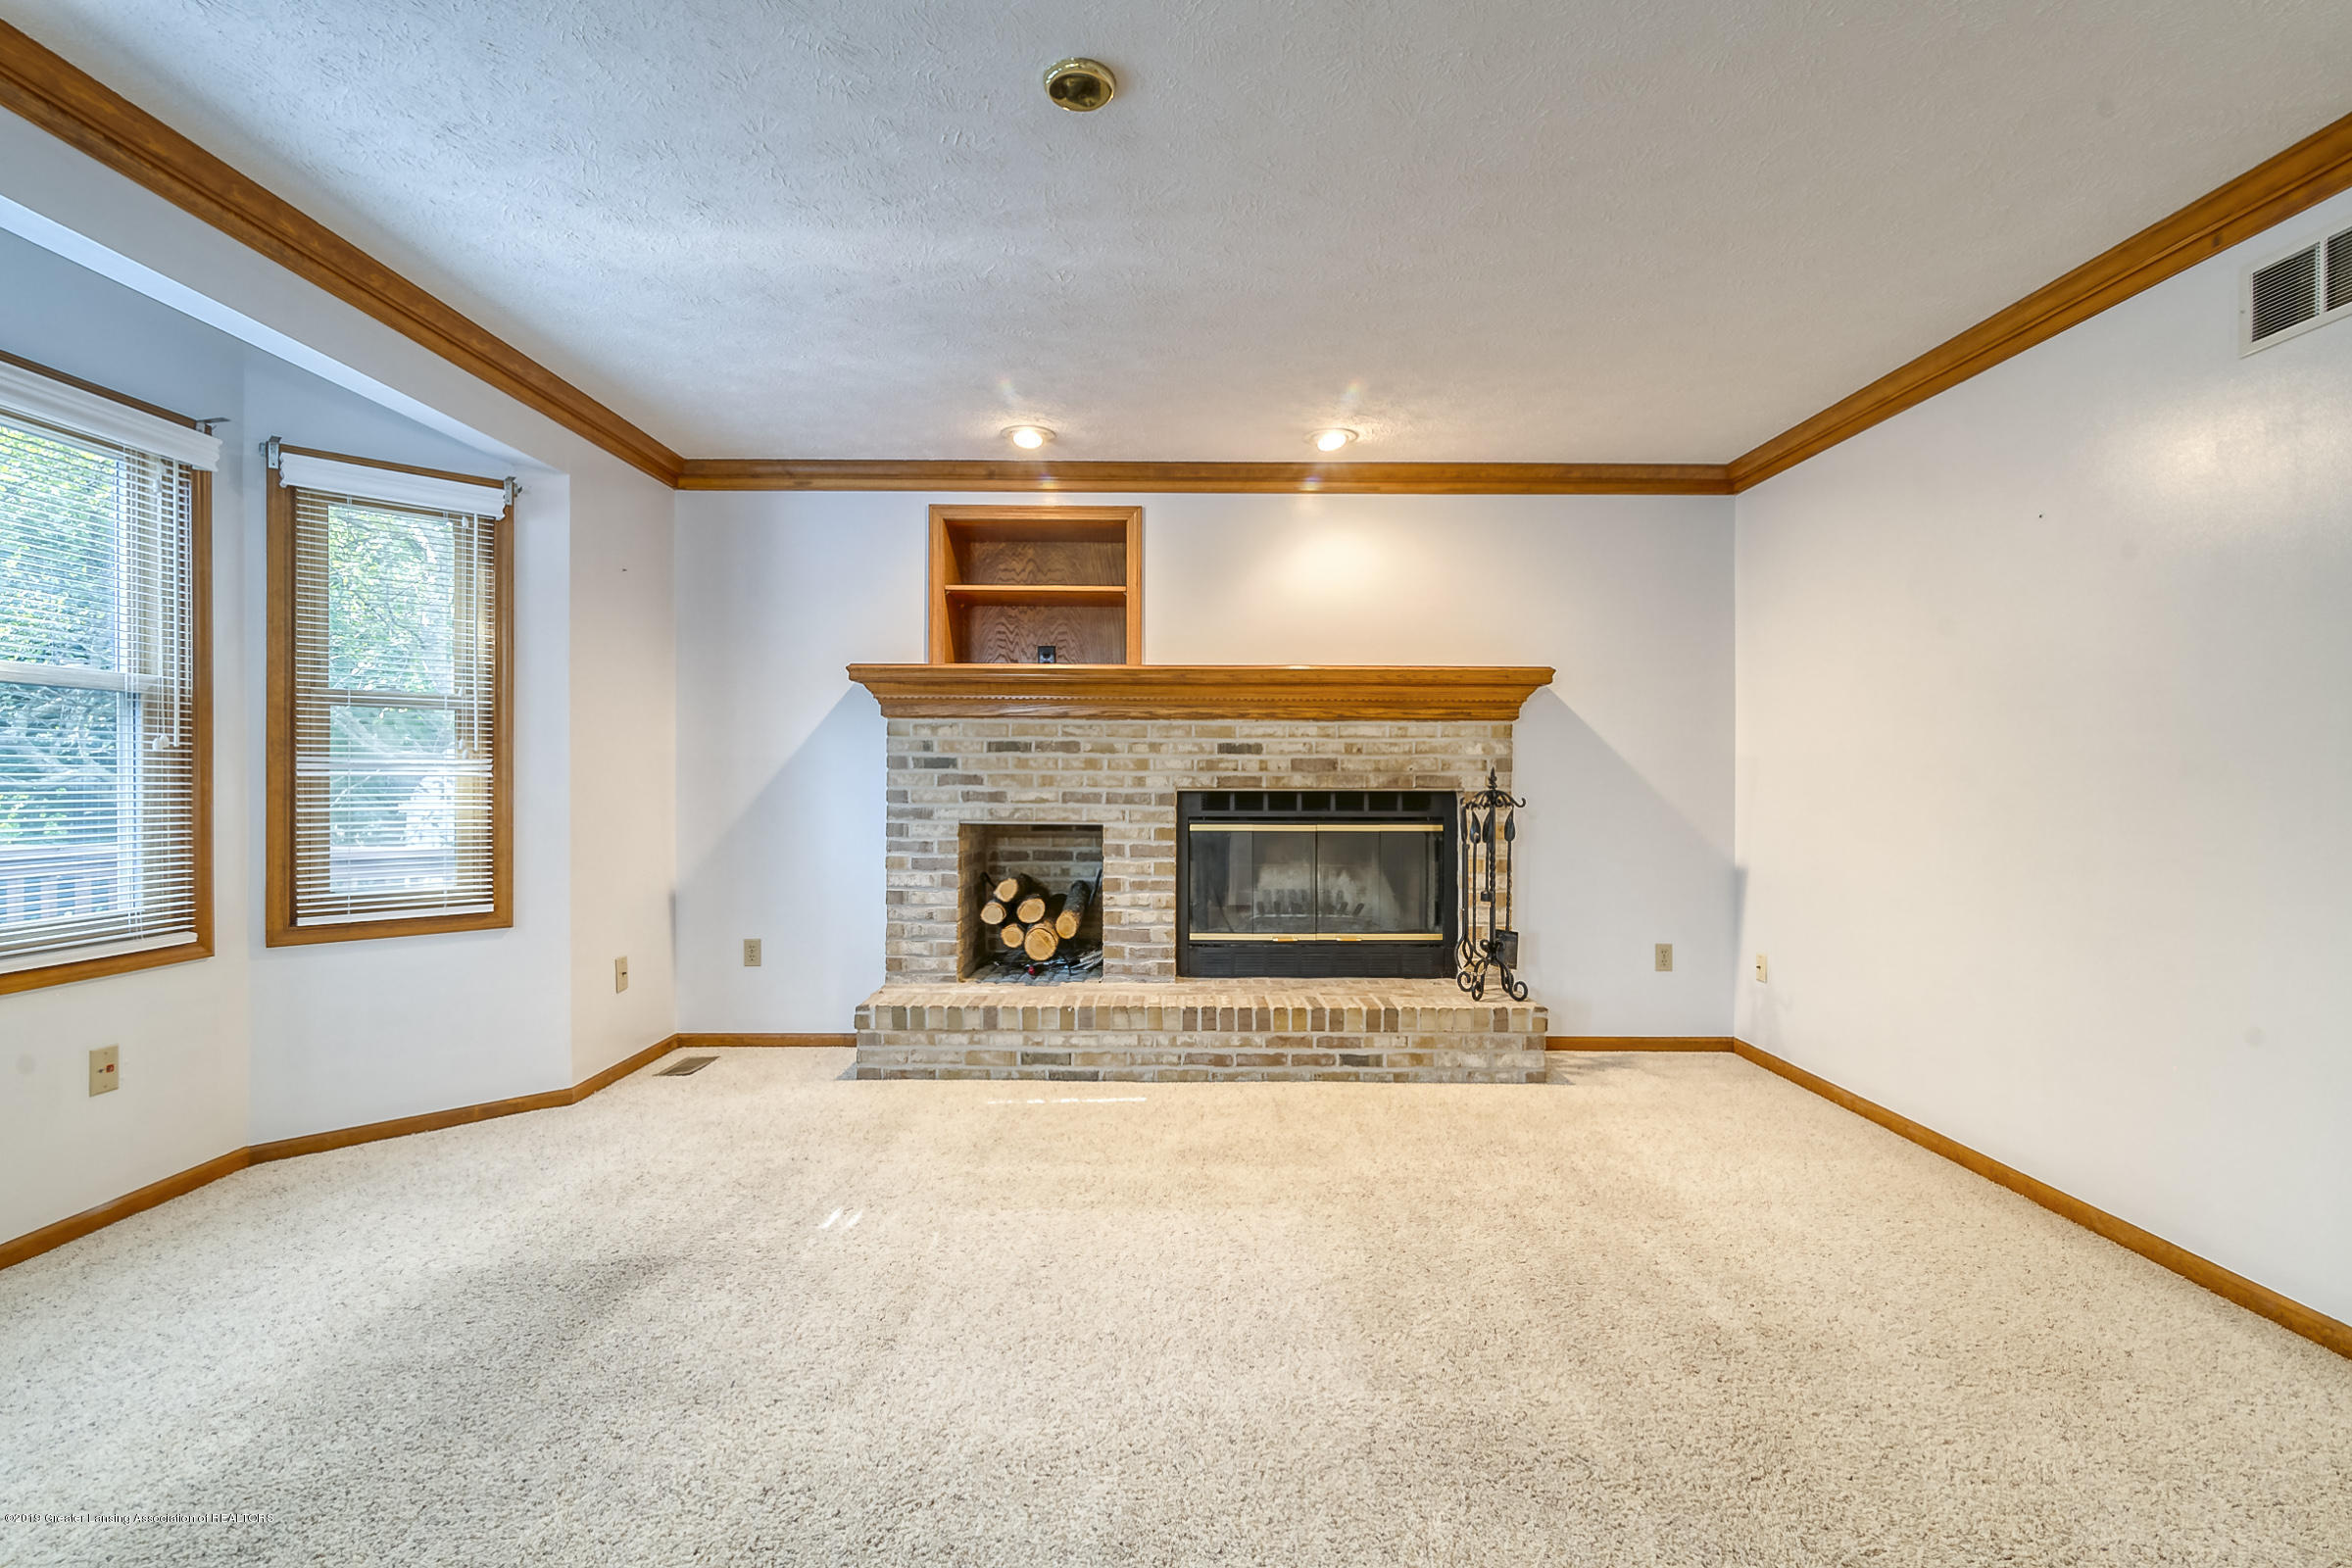 2343 Chisholm Ct - LIVING ROOM - 3